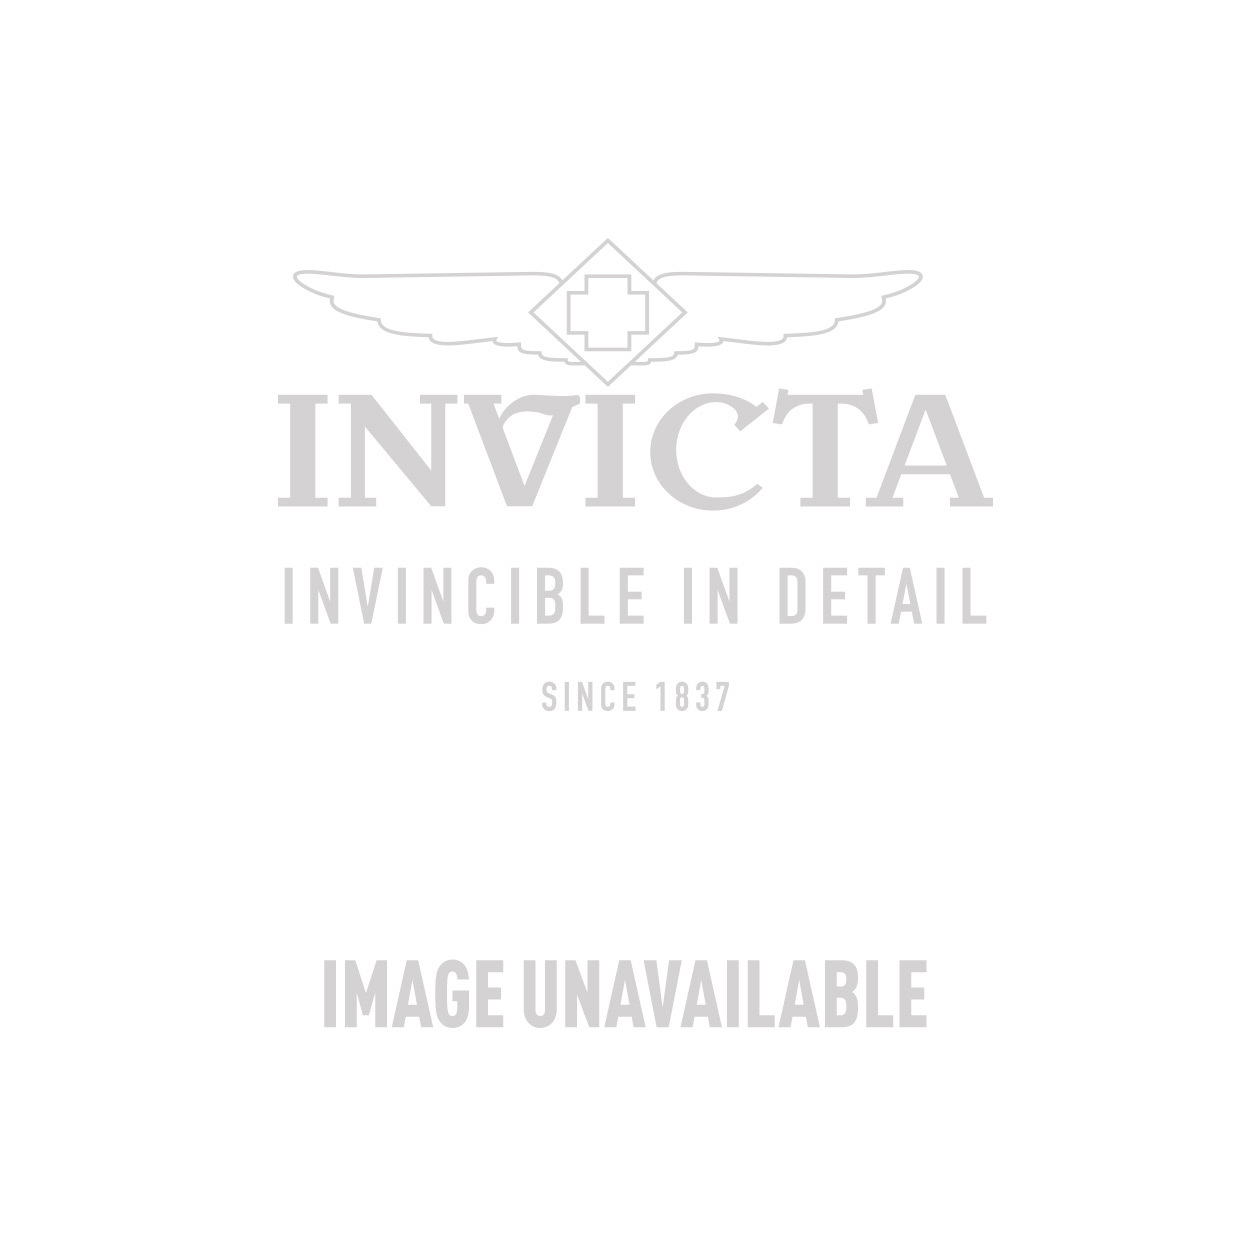 Invicta Specialty Quartz Watch - Black case with Black tone Stainless Steel band - Model 11381